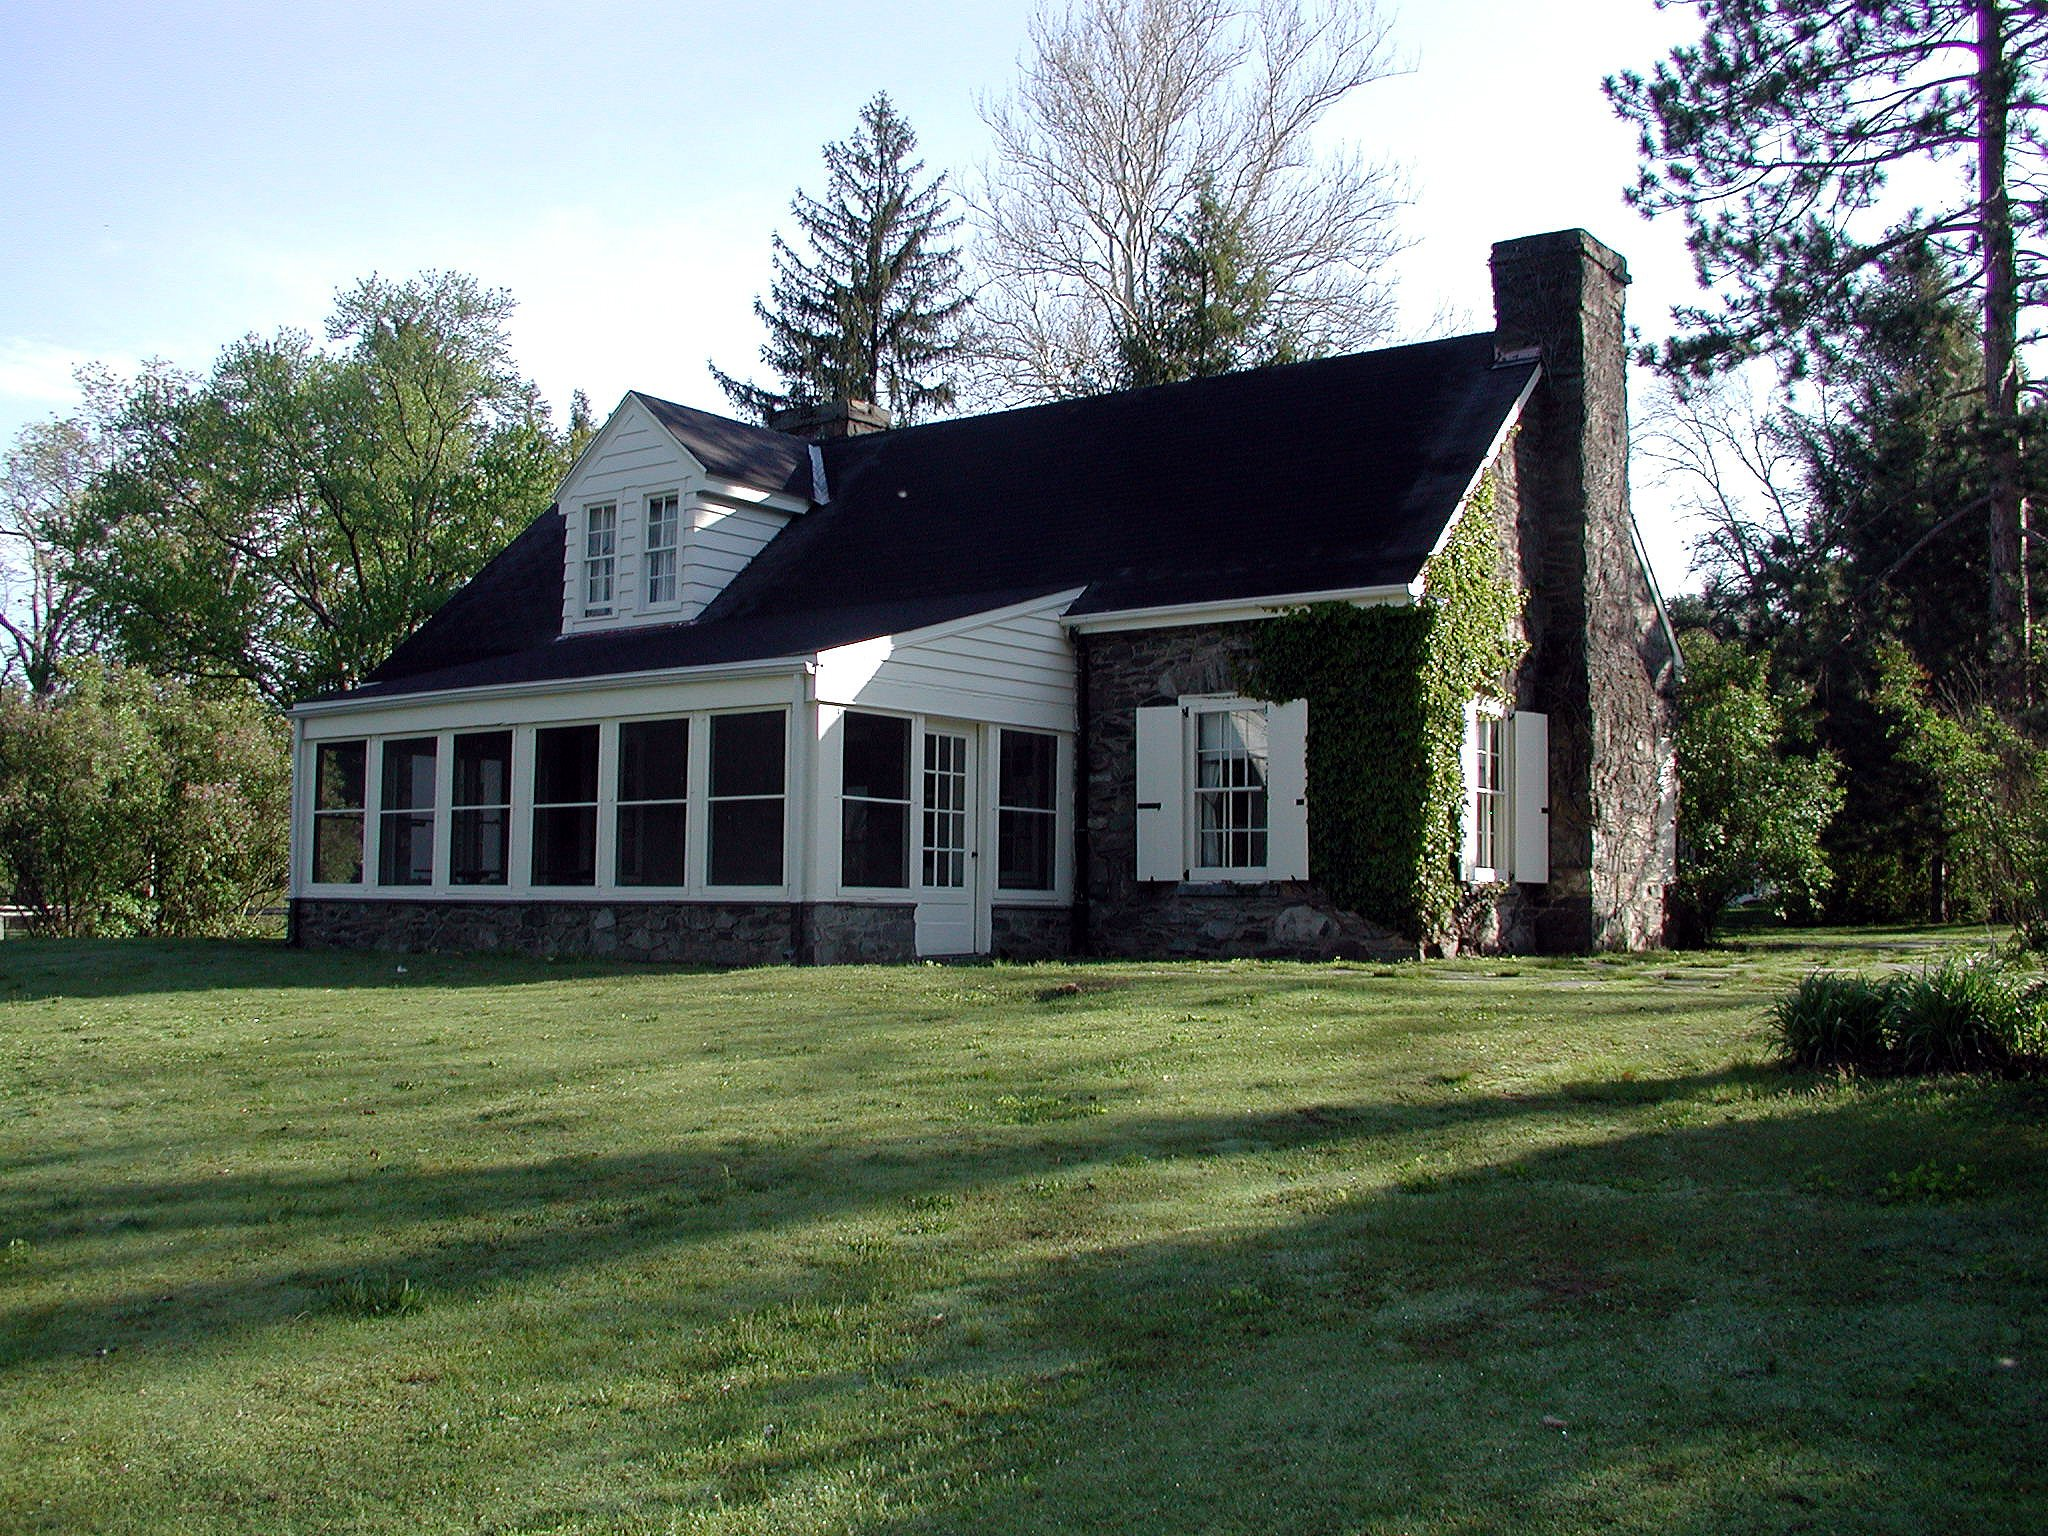 The first cottage occupied by Eleanor Roosevelt, the Stone Cottage